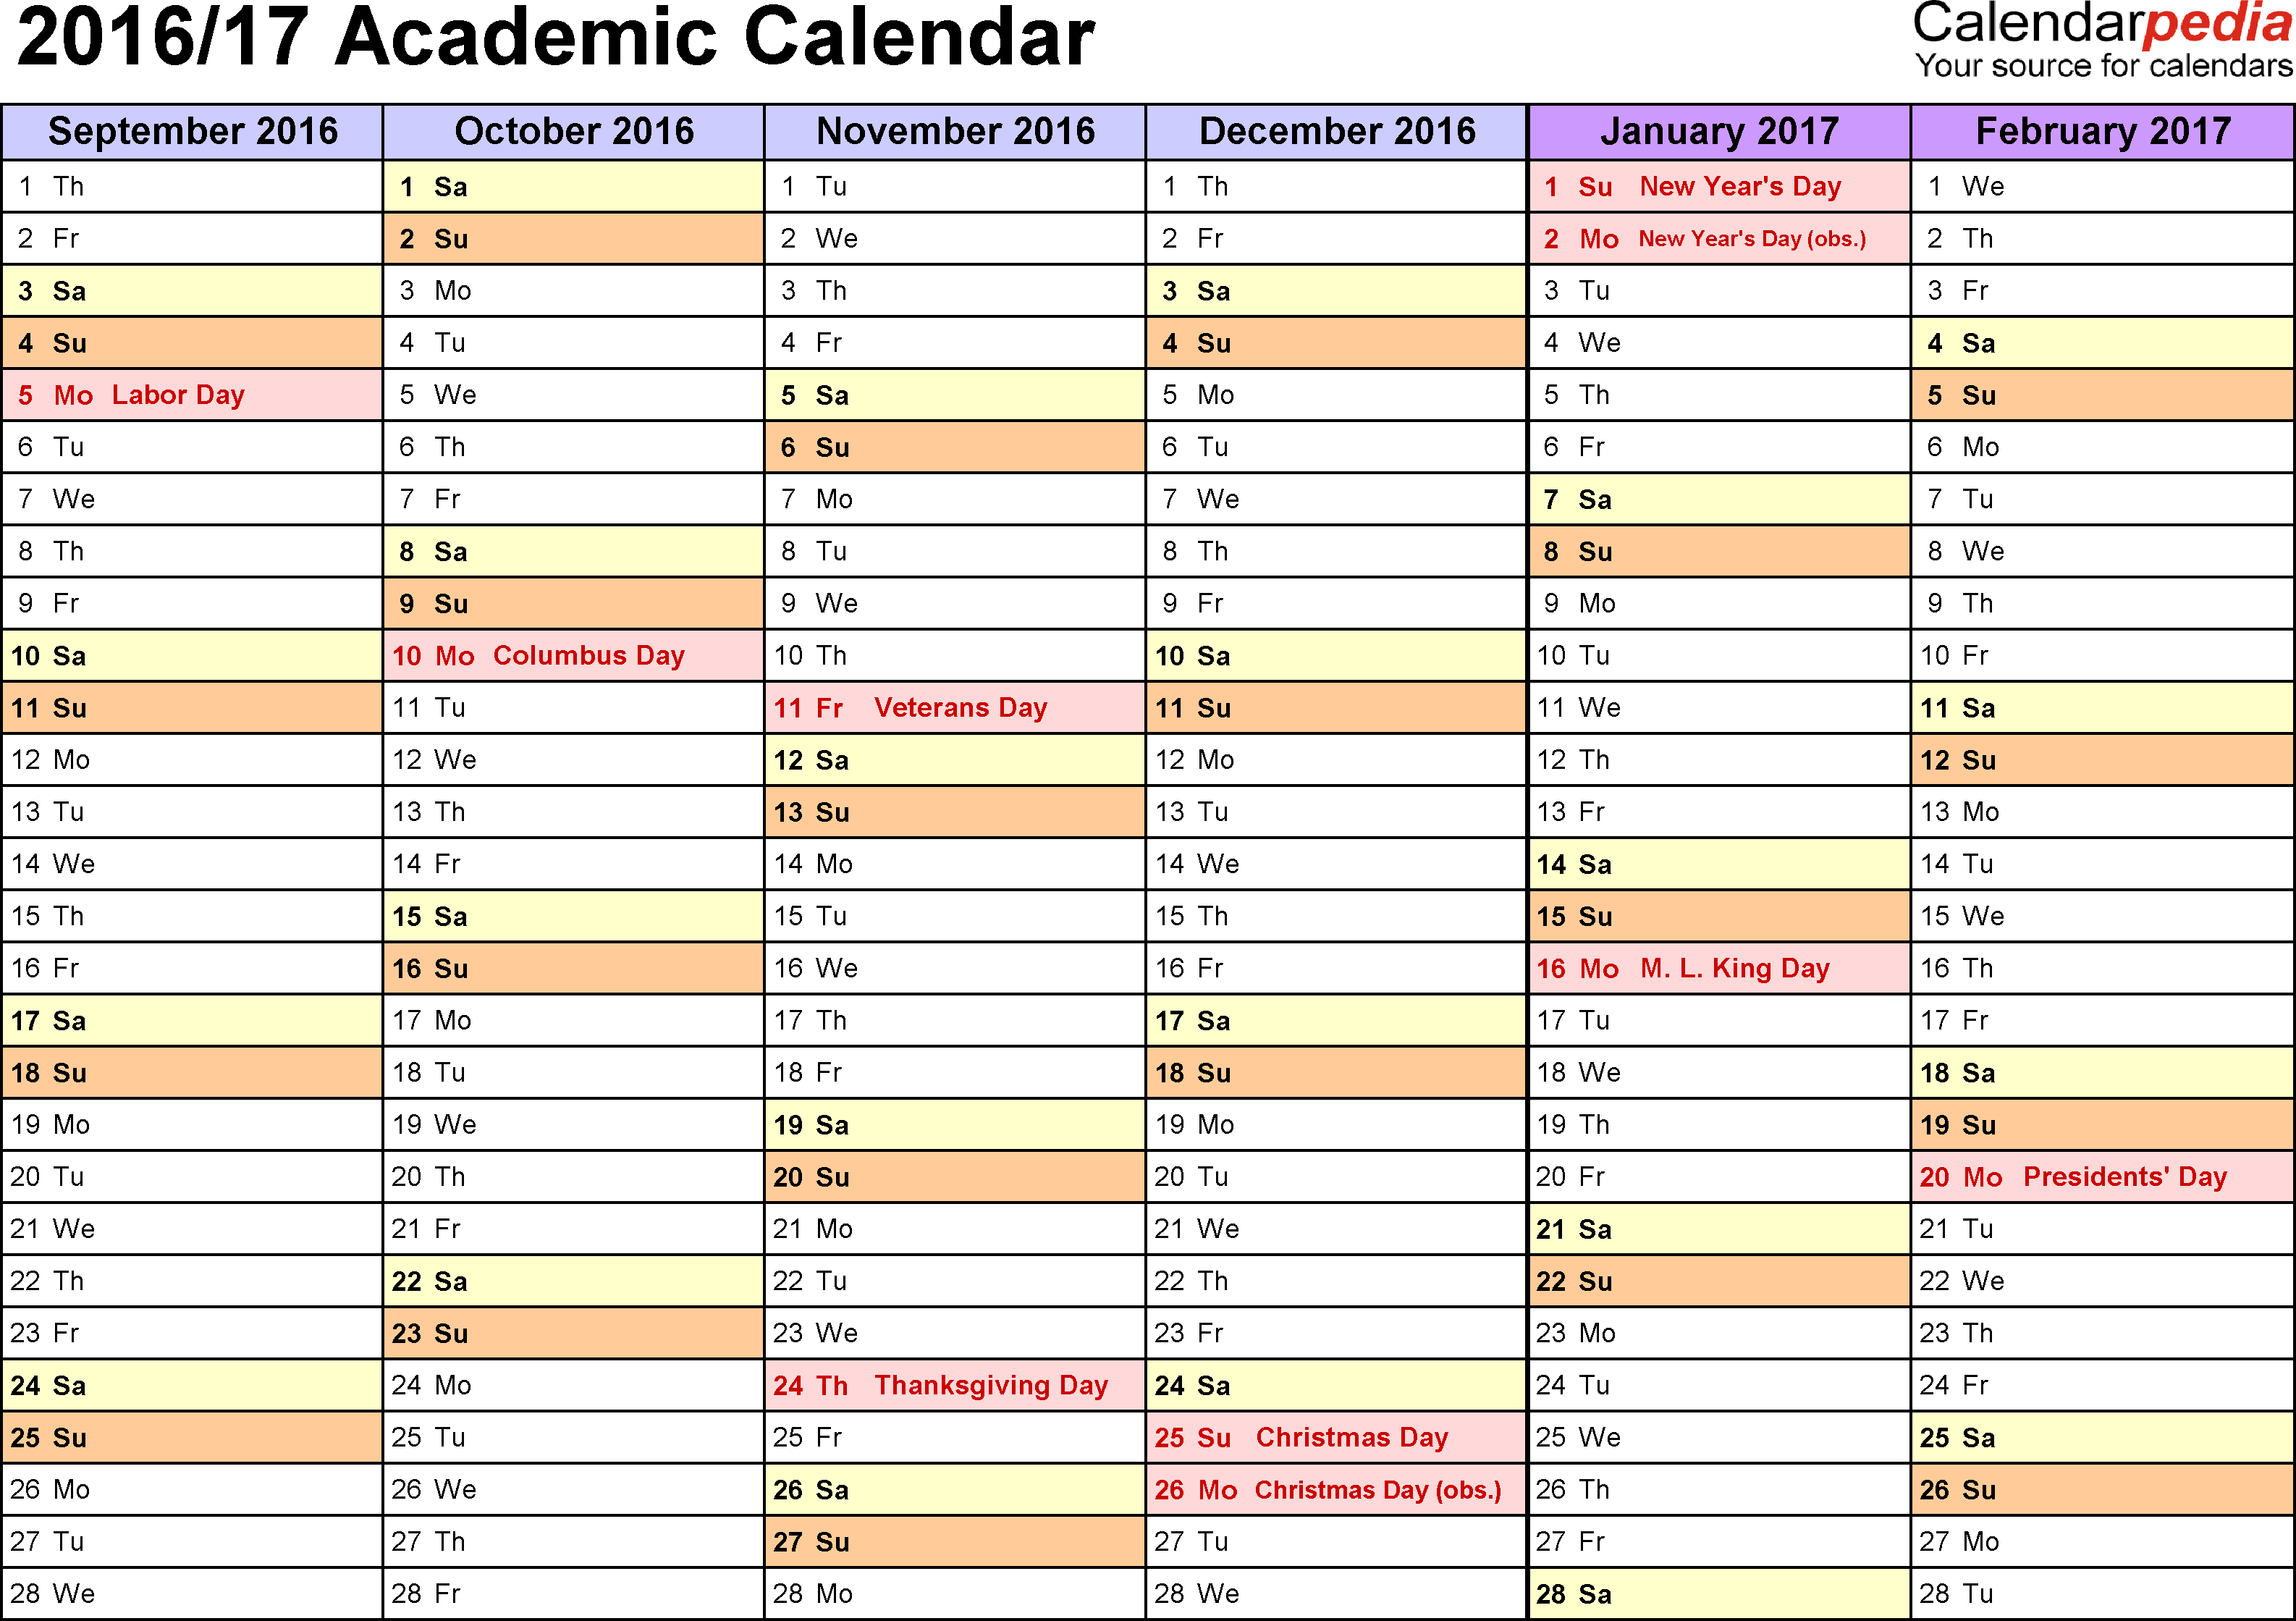 Academic calendars 2016/2017 as free printable PDF templates